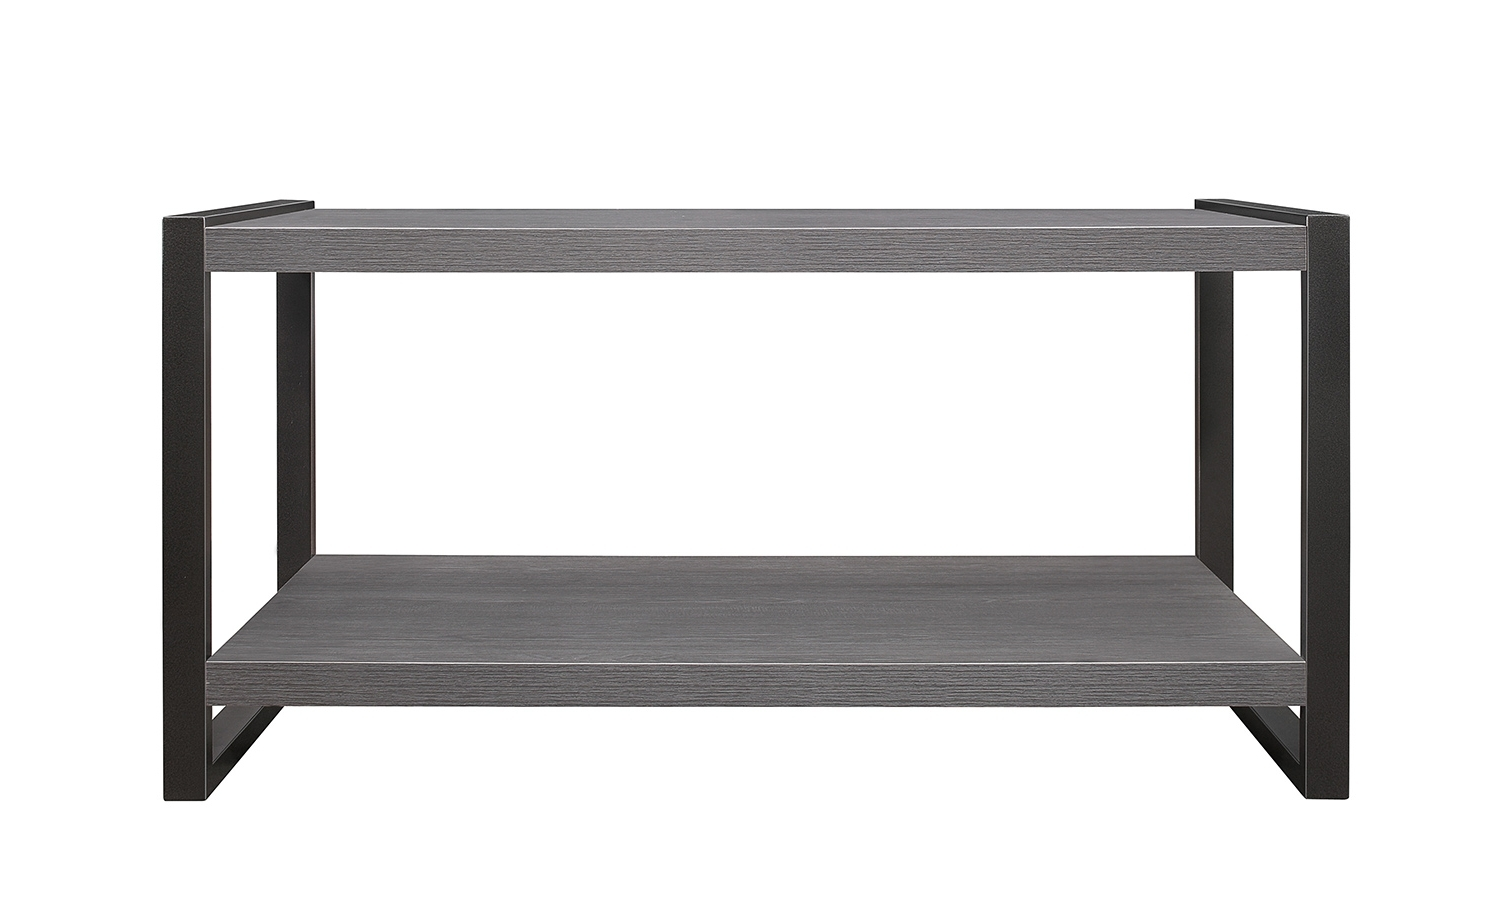 Homelegance Dogue Cocktail/coffee Table – Gunmetal Gray 3606 30 Inside Favorite Gunmetal Coffee Tables (View 7 of 20)